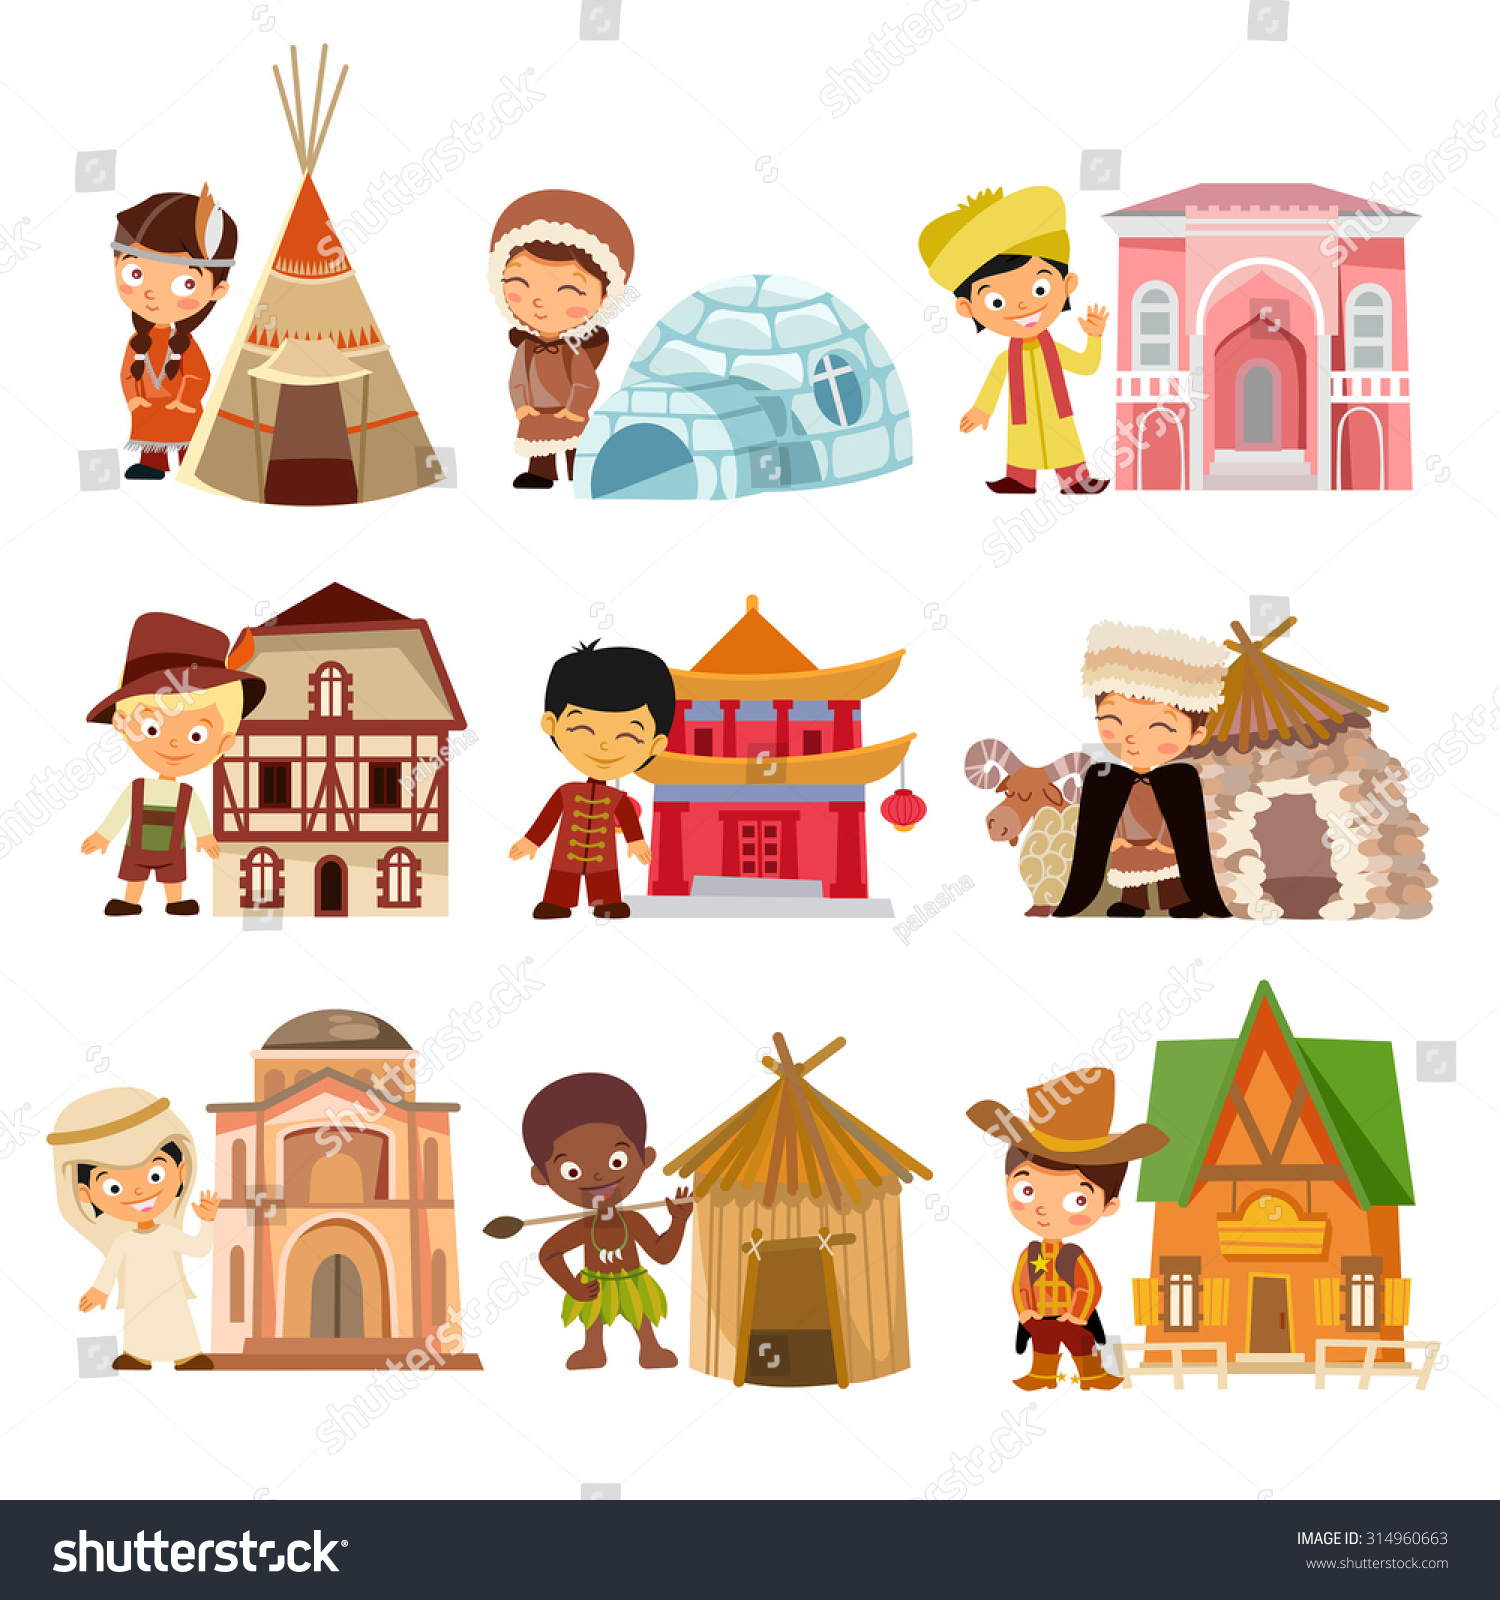 Cartoon Characters Houses : People various nationalities their traditional houses